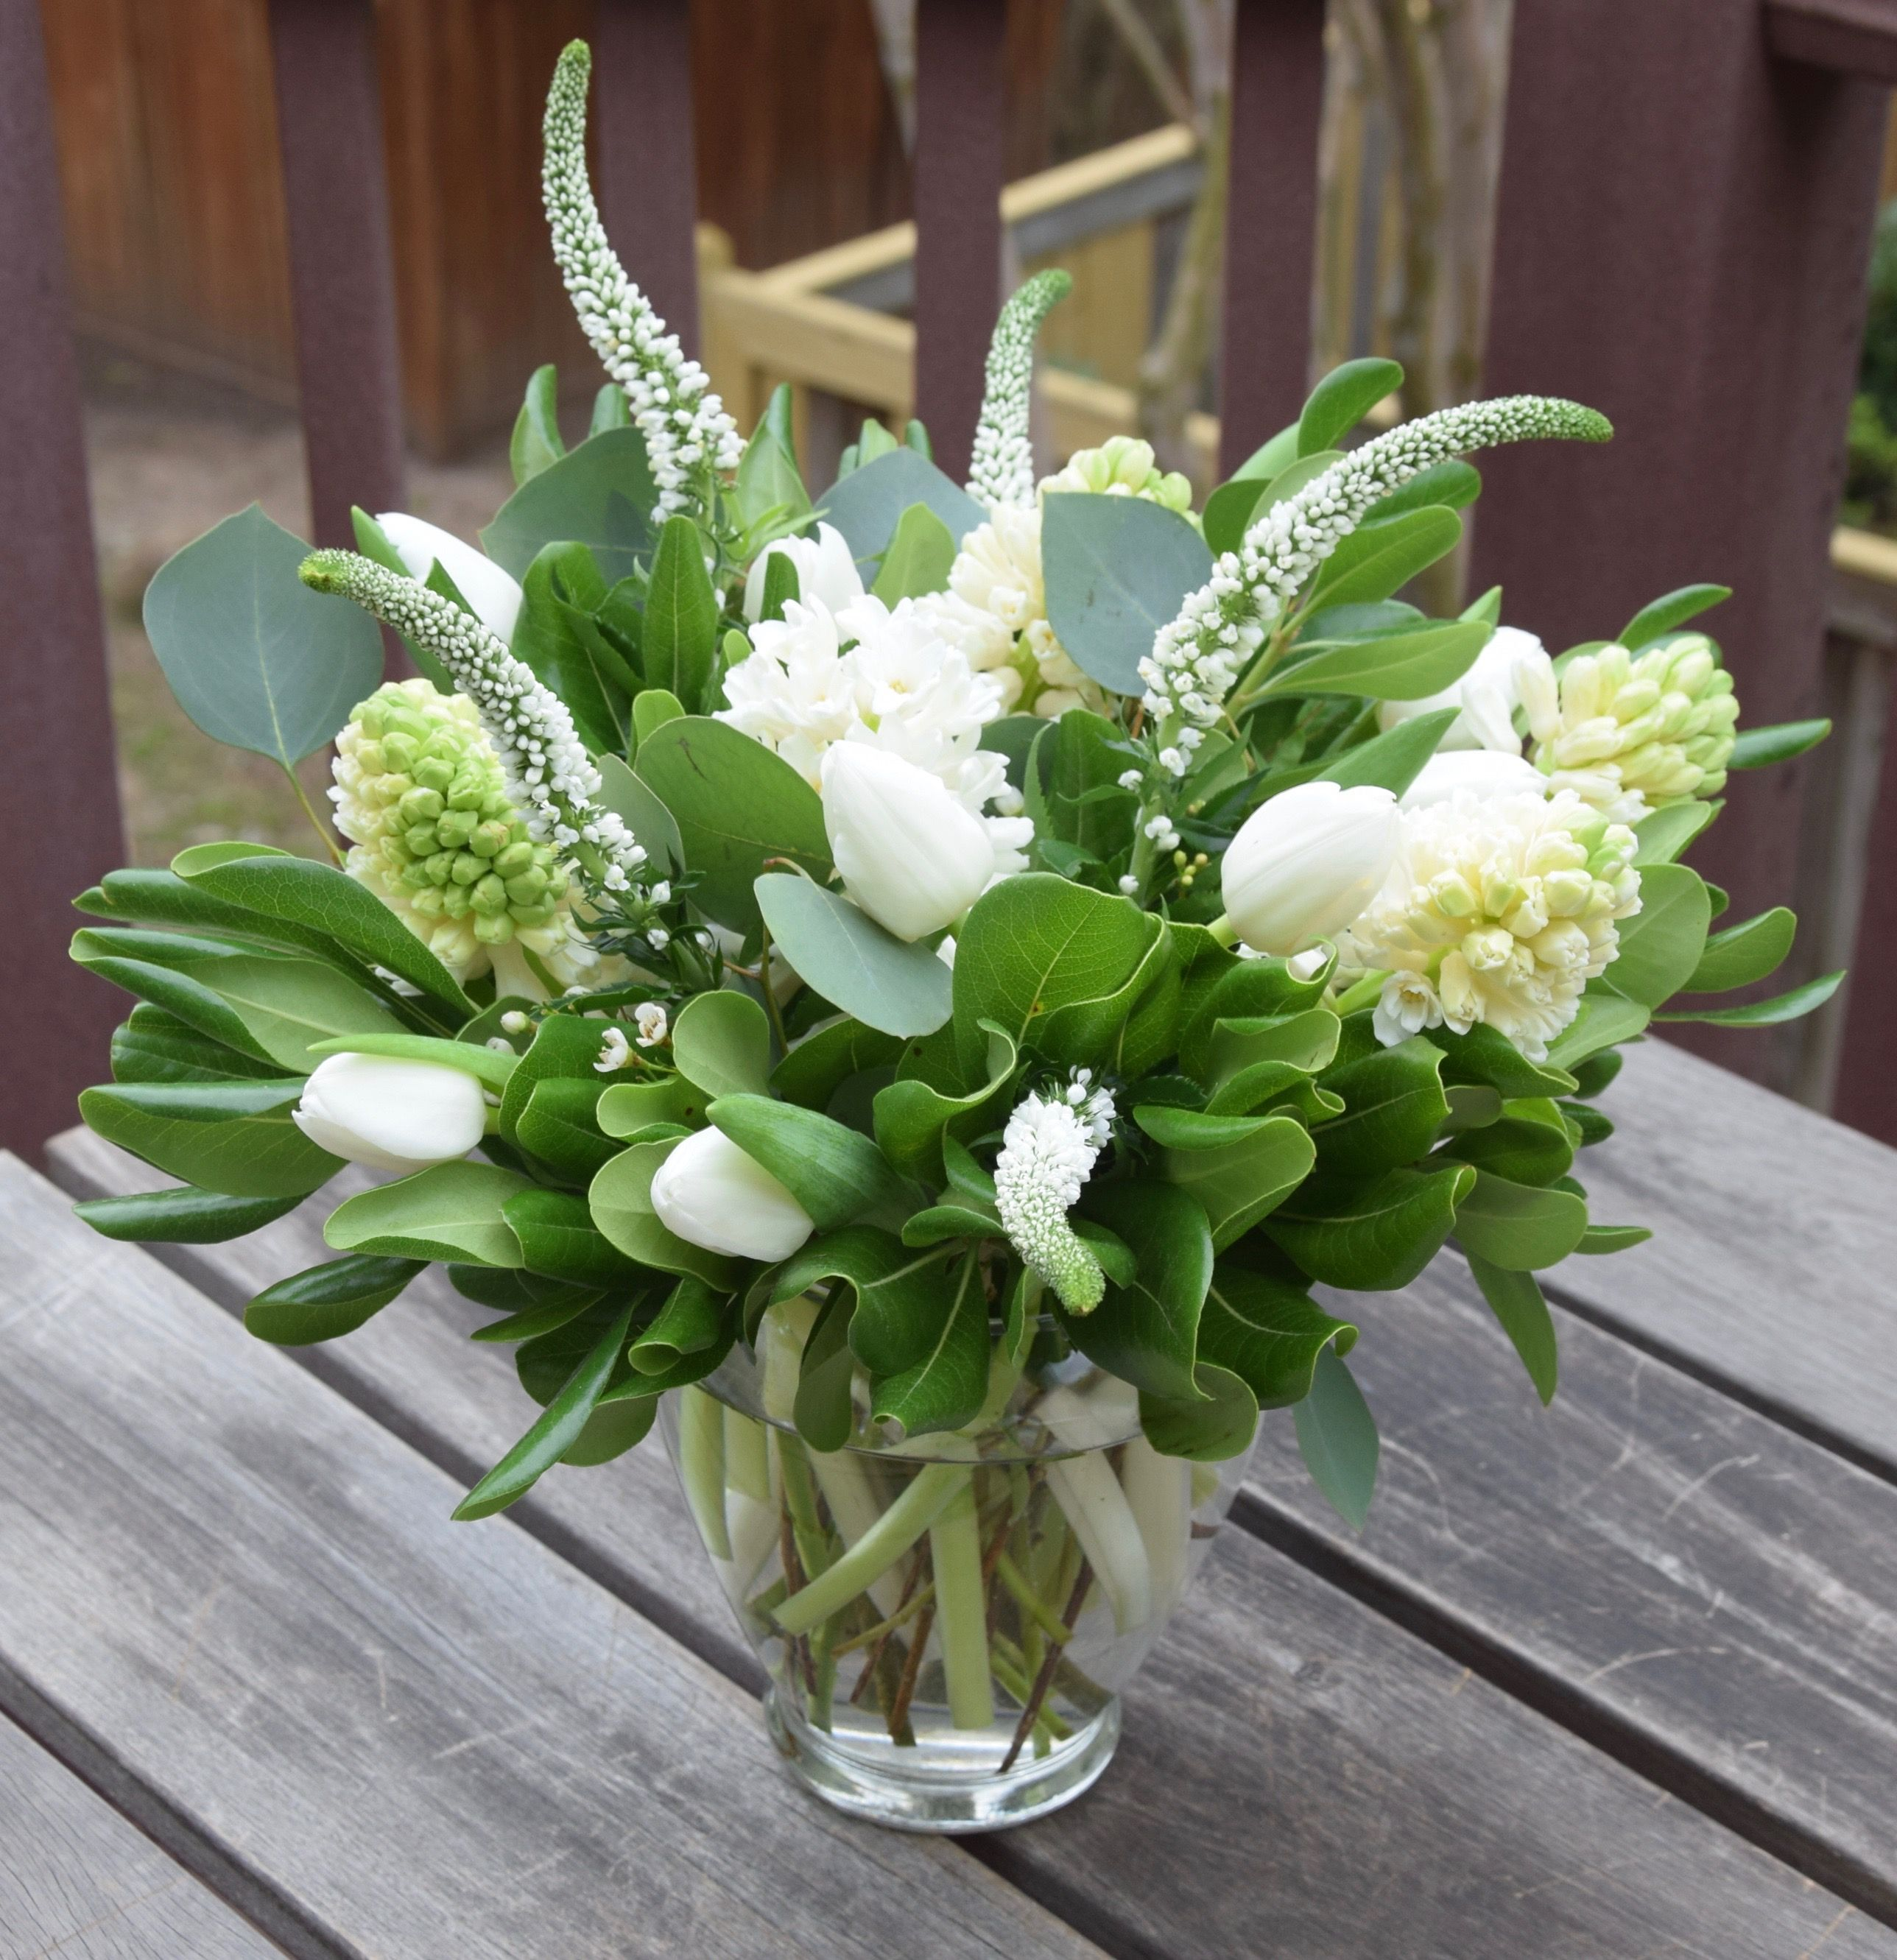 Flower Arrangement In A Vase With White Tulips Hyacinths Veronica And Greens White Flower Arrangements Memorial Flowers Tulips Arrangement